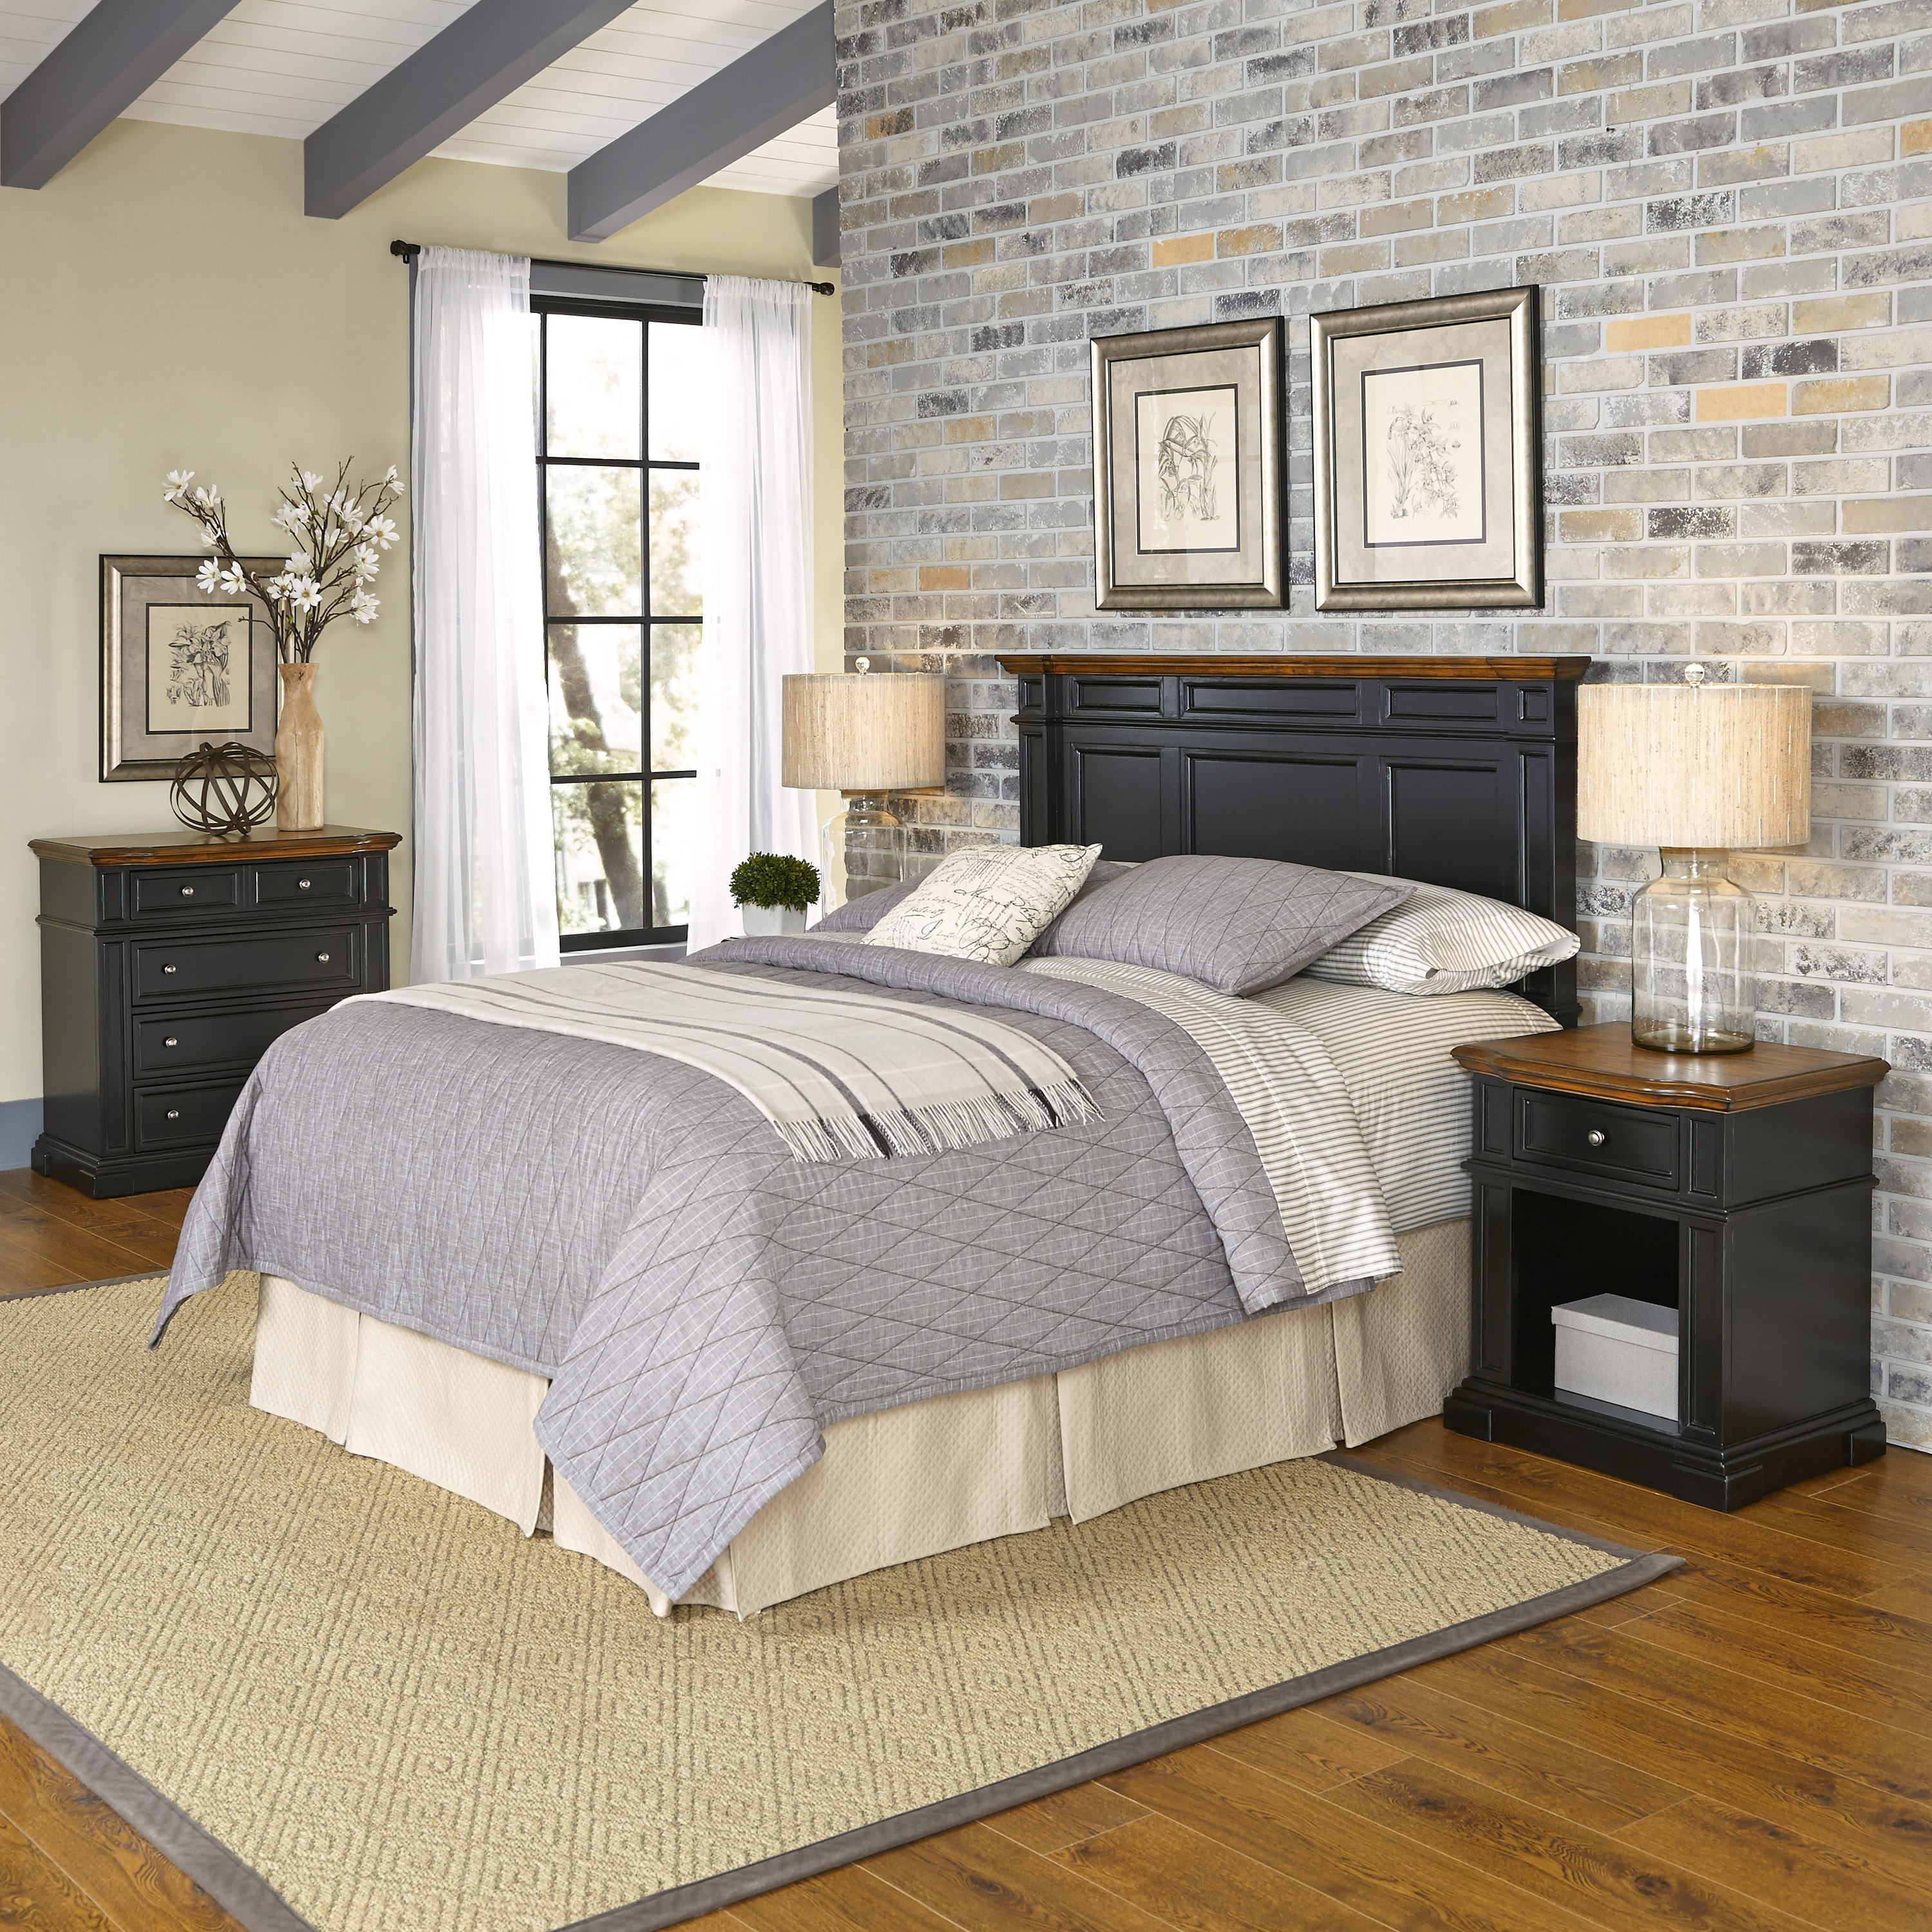 Home Styles Americana Queen/Full Headboard, Two Night Stands, and Chest